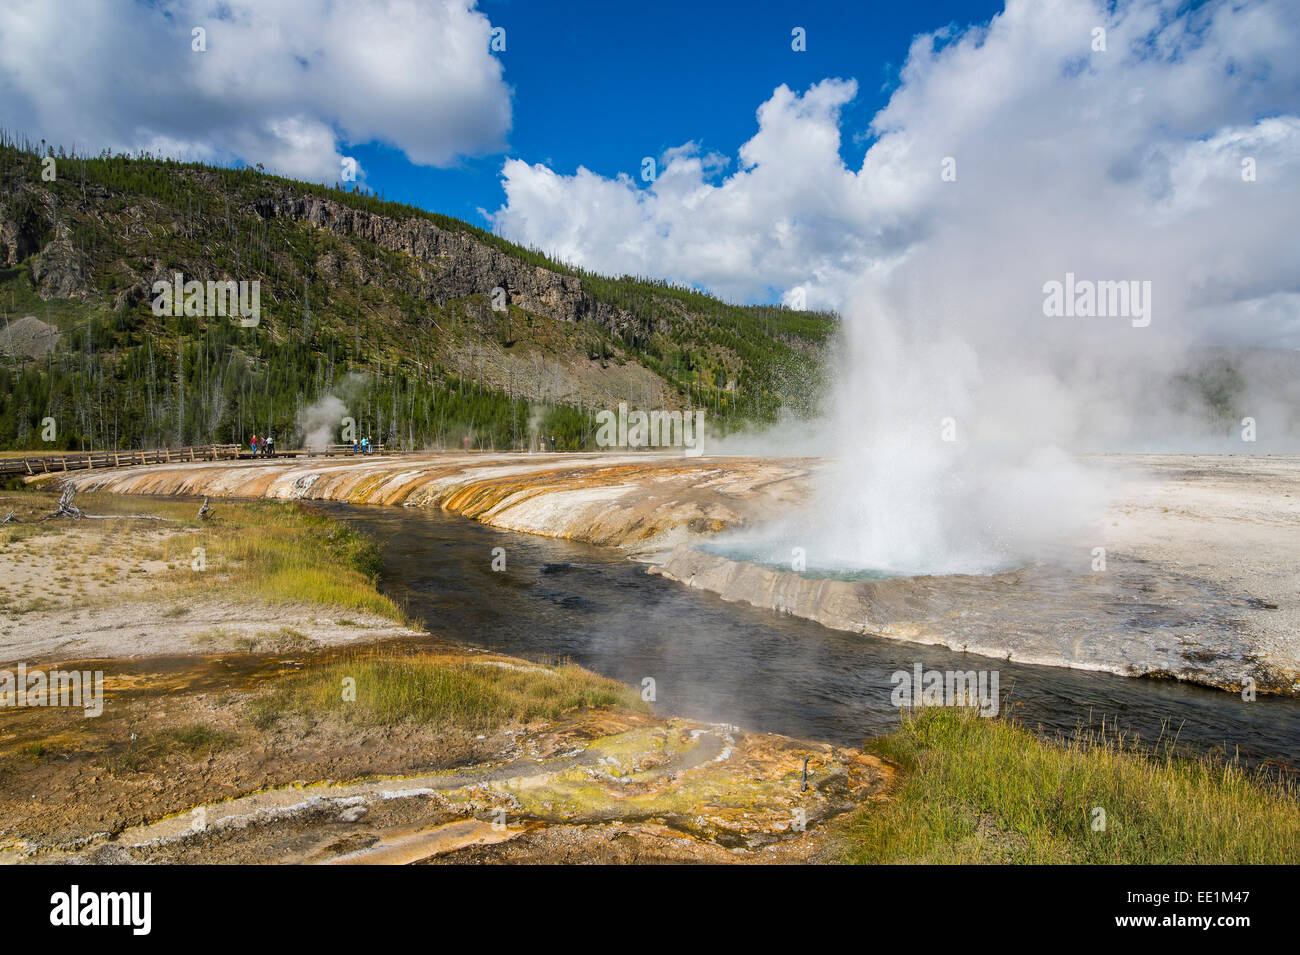 Cliff Geyser erupting in the Black Sand Basin, Yellowstone National Park, UNESCO World Heritage Site, Wyoming, USA - Stock Image